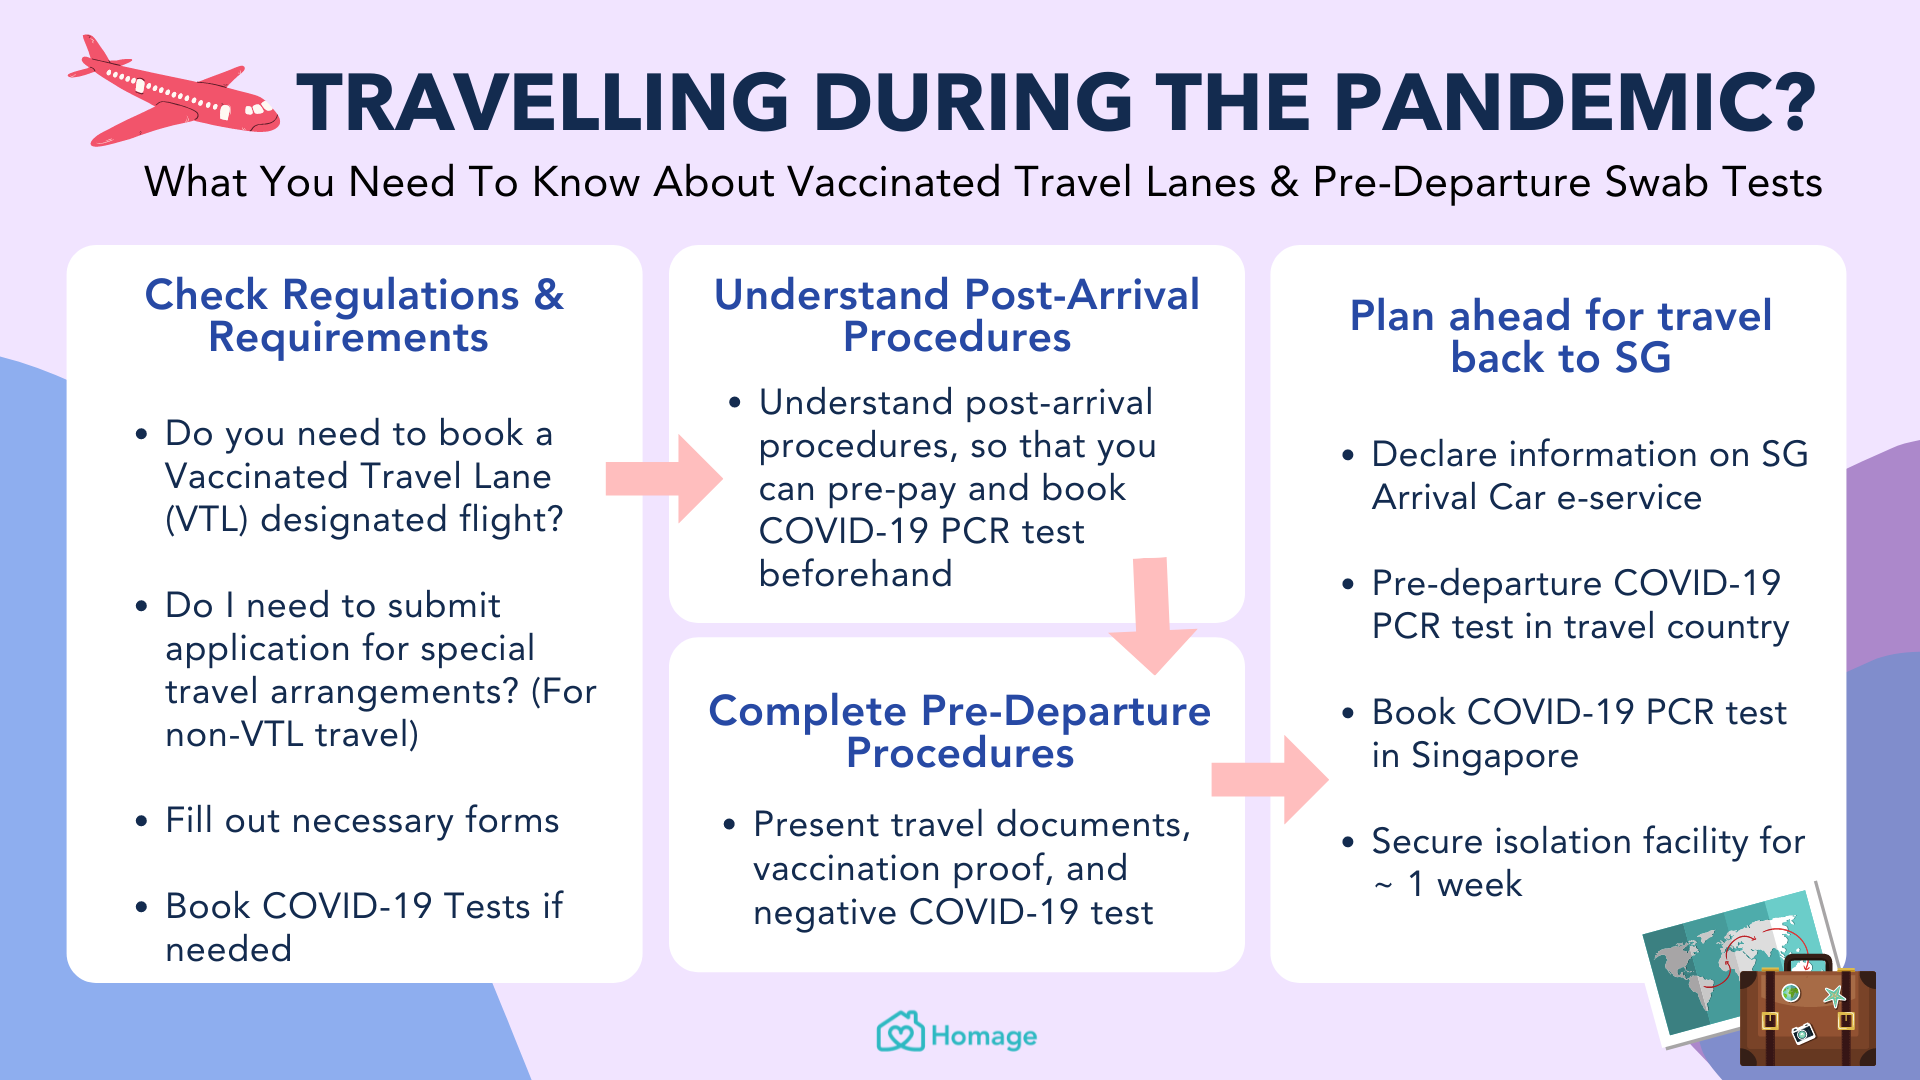 vaccinated travel lane, covid-19 travel, pandemic, travel, covid-19 pcr test